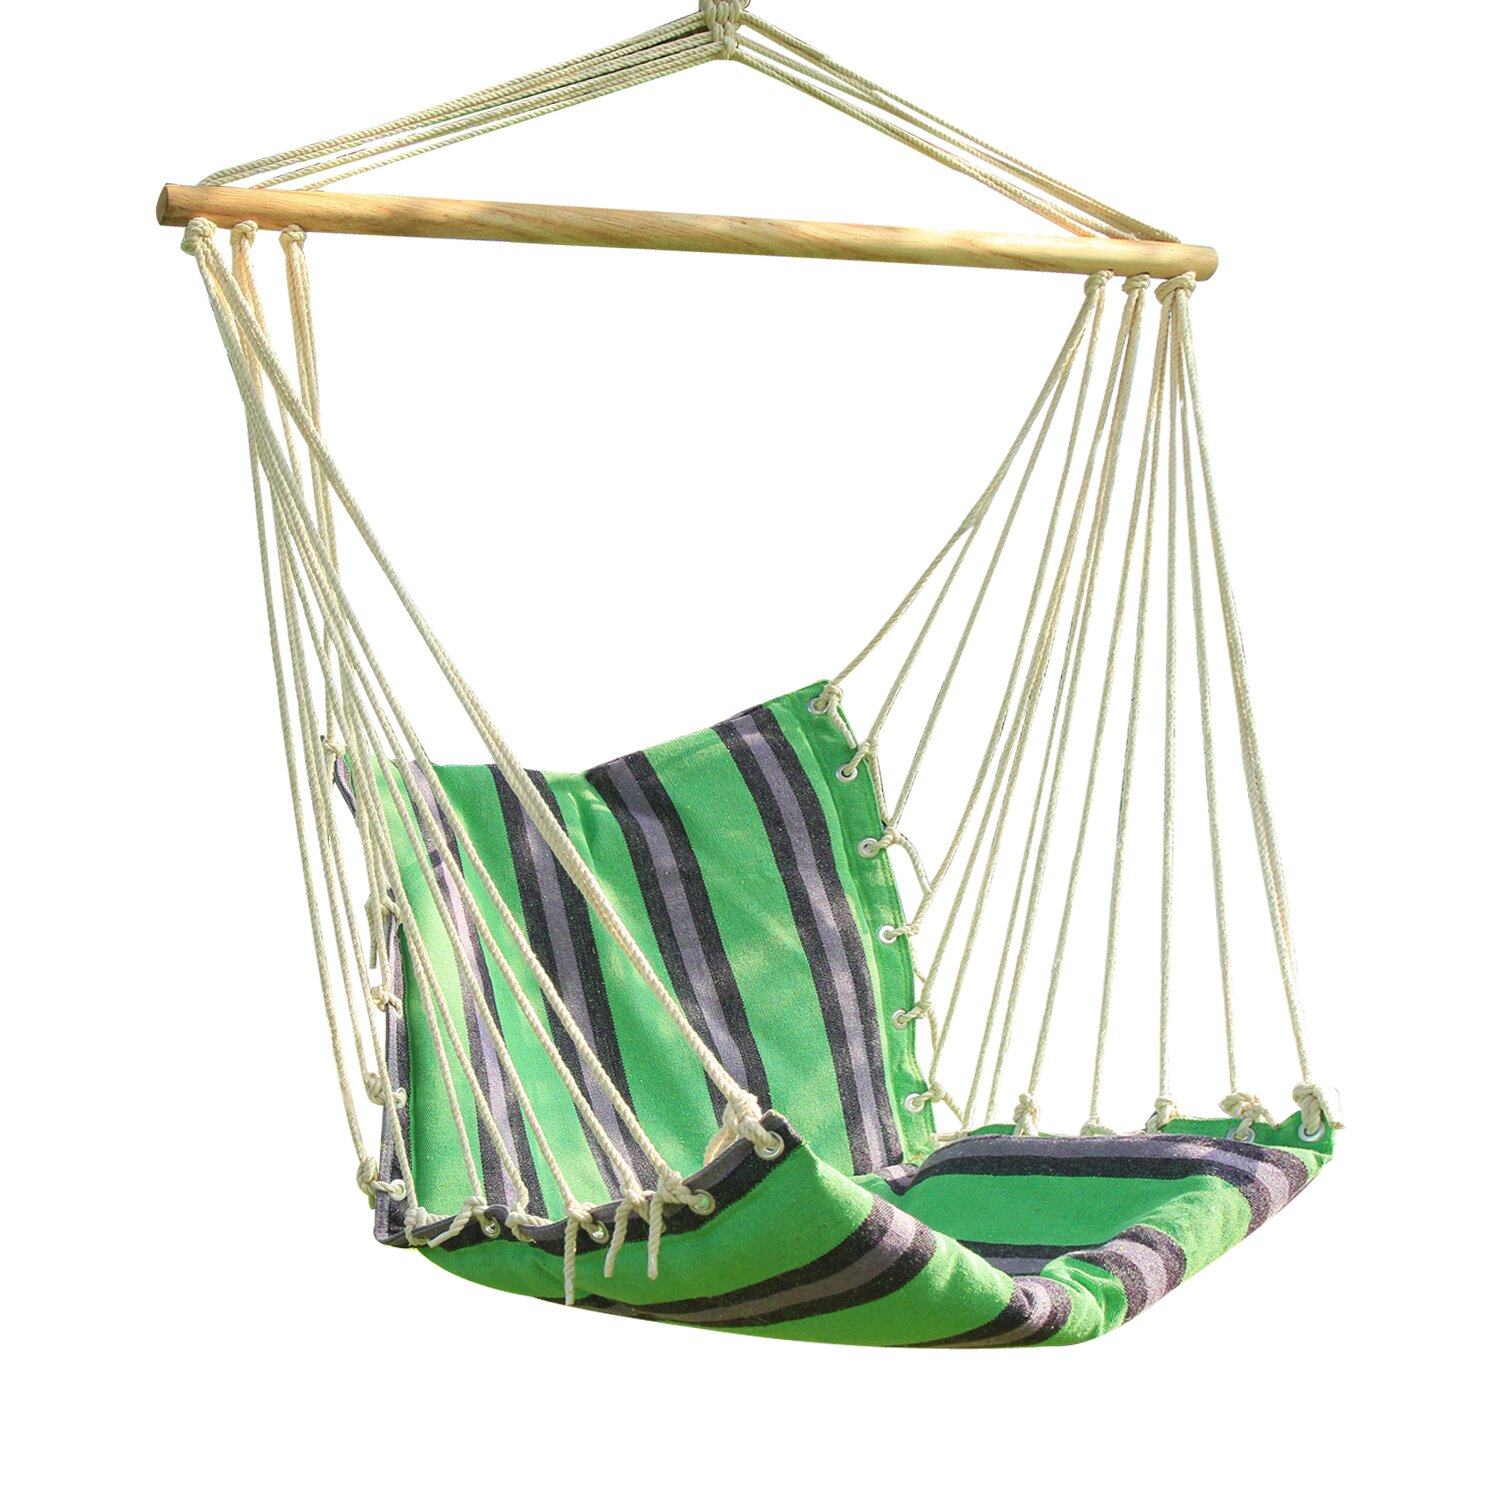 Tree Hanging Suspended Indoor Outdoor Hammock Chair